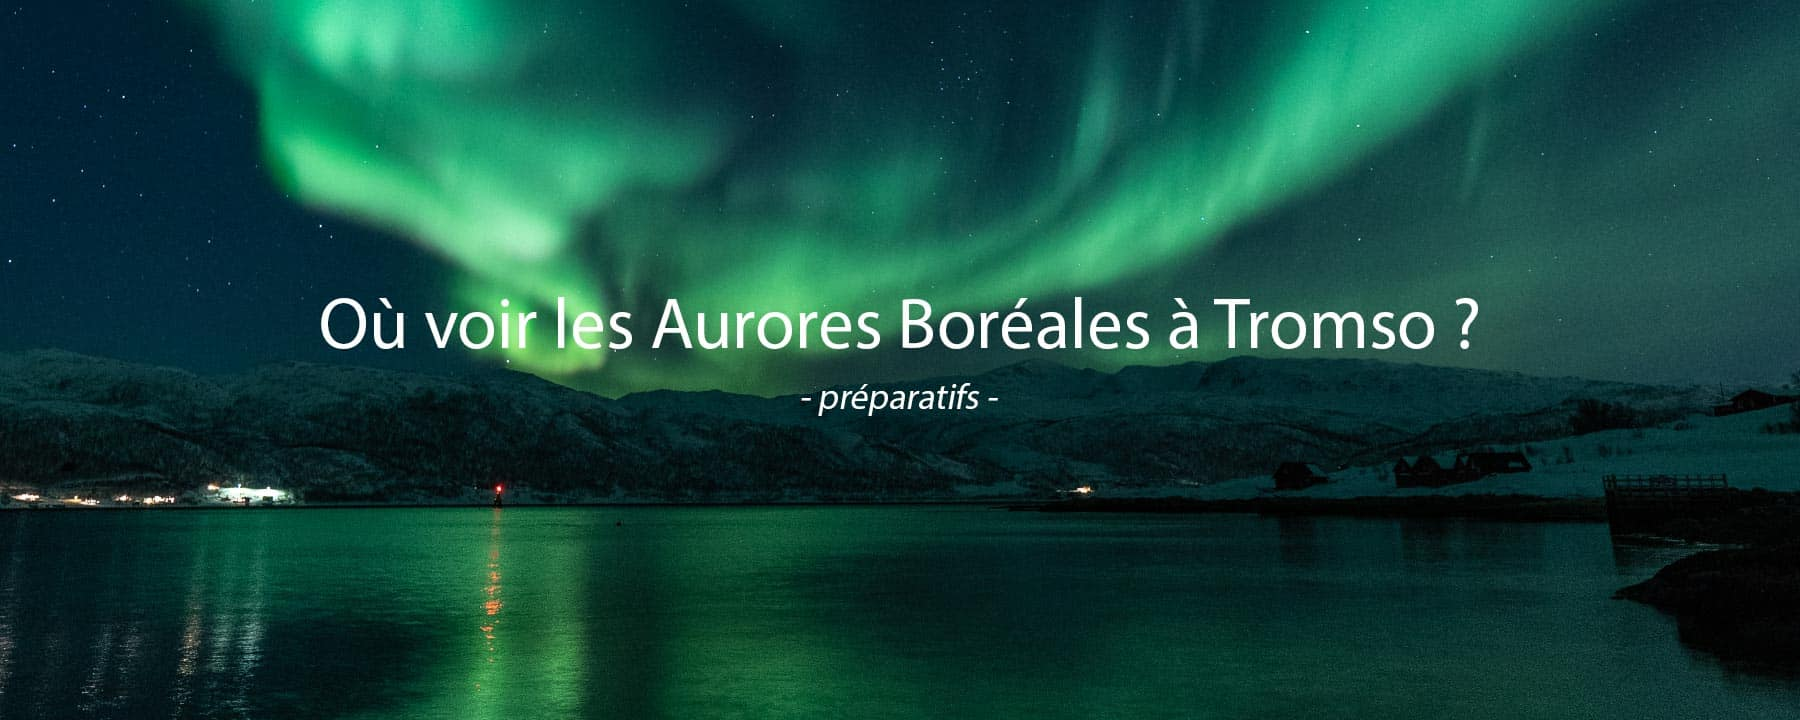 photos aurores boreales